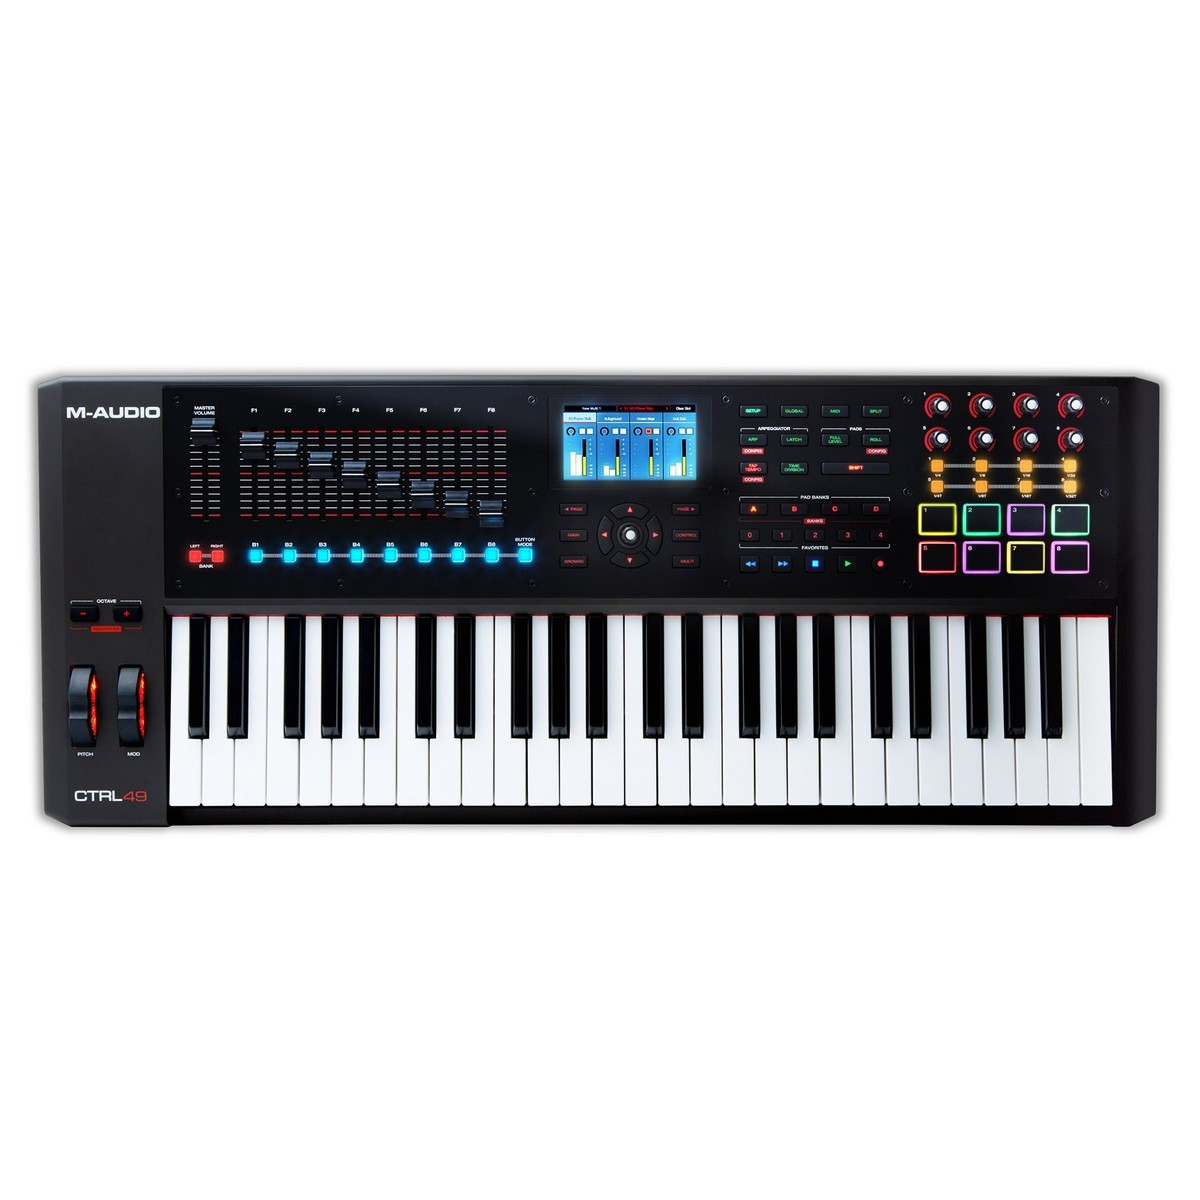 Cheap M-Audio CTRL-49 MIDI Controller